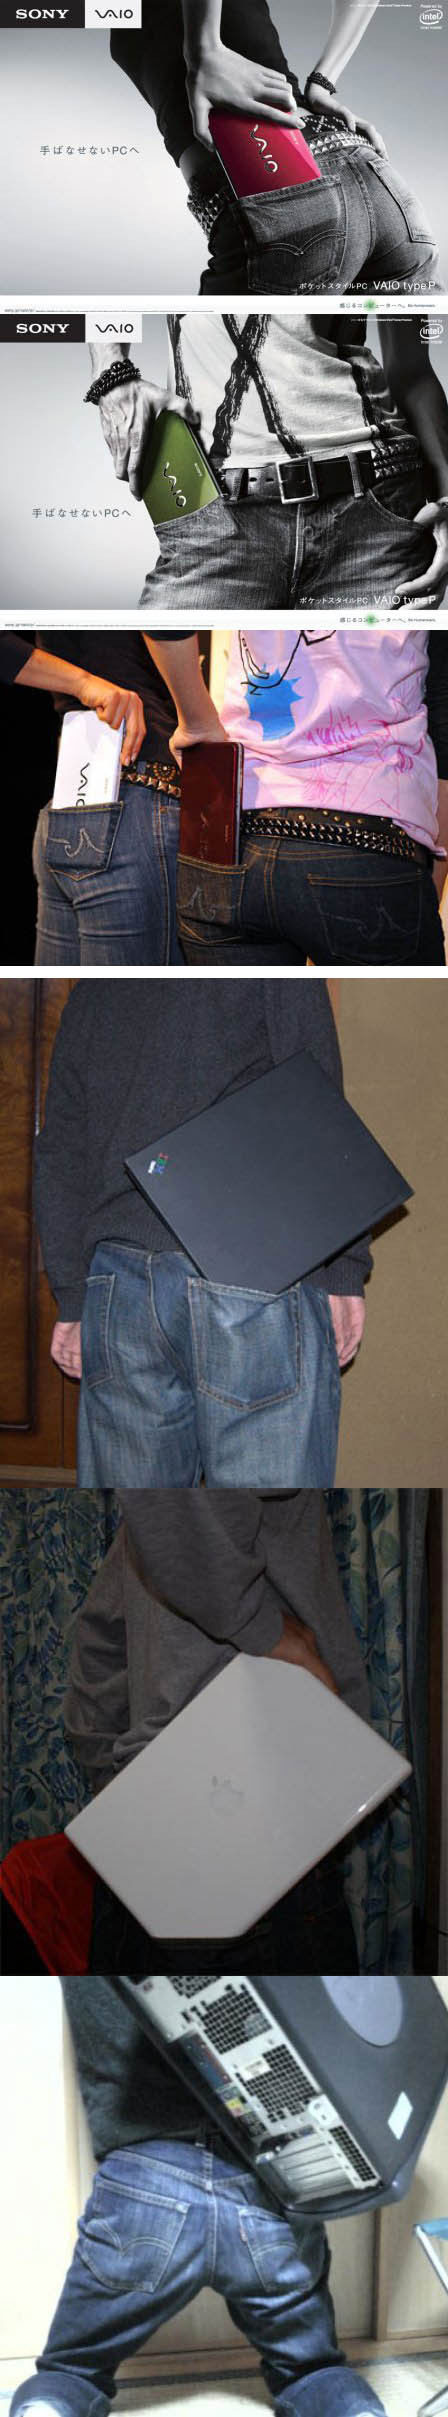 Pocket Laptop And Pocket PC